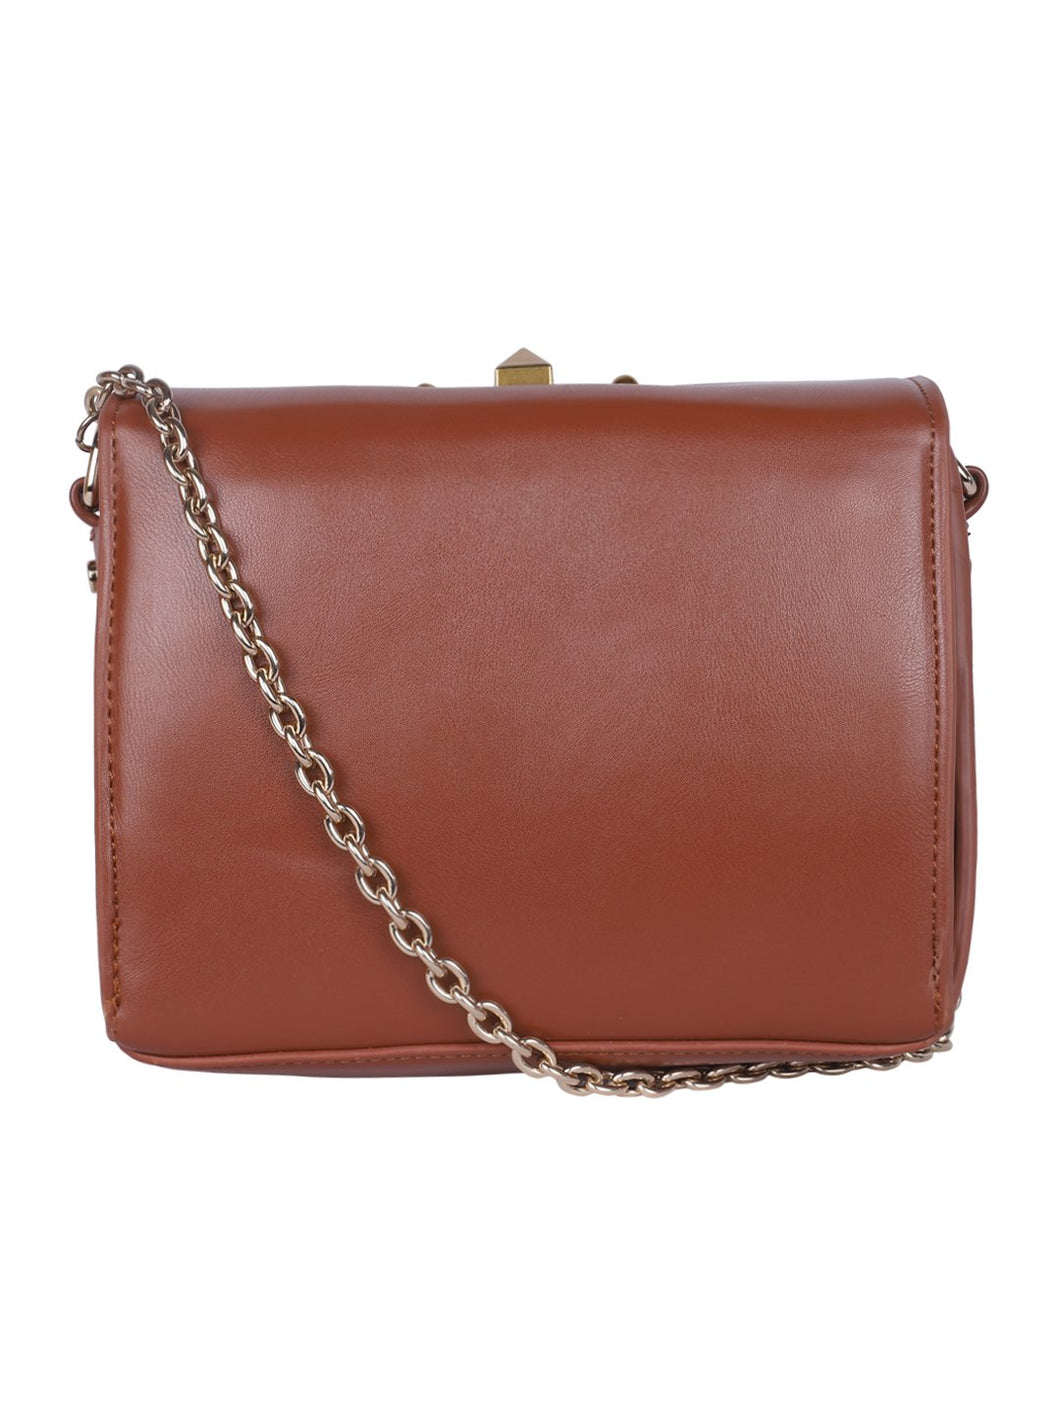 Classic Sling with Gold Clasp - Brown